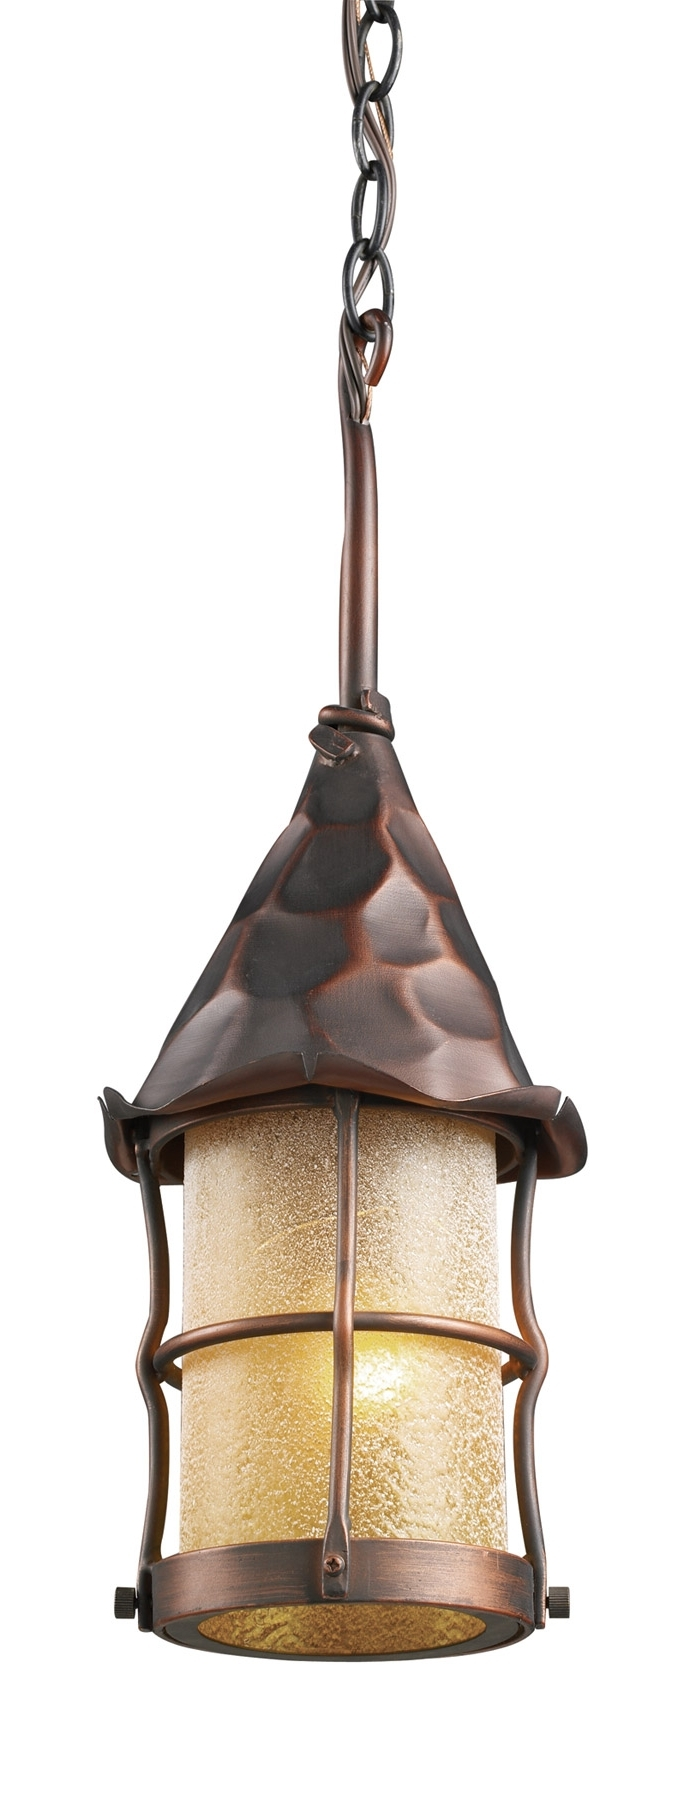 Elk Lighting 388 Ac Rustica Outdoor Hanging Lantern Within Current Large Outdoor Rustic Lanterns (View 18 of 20)